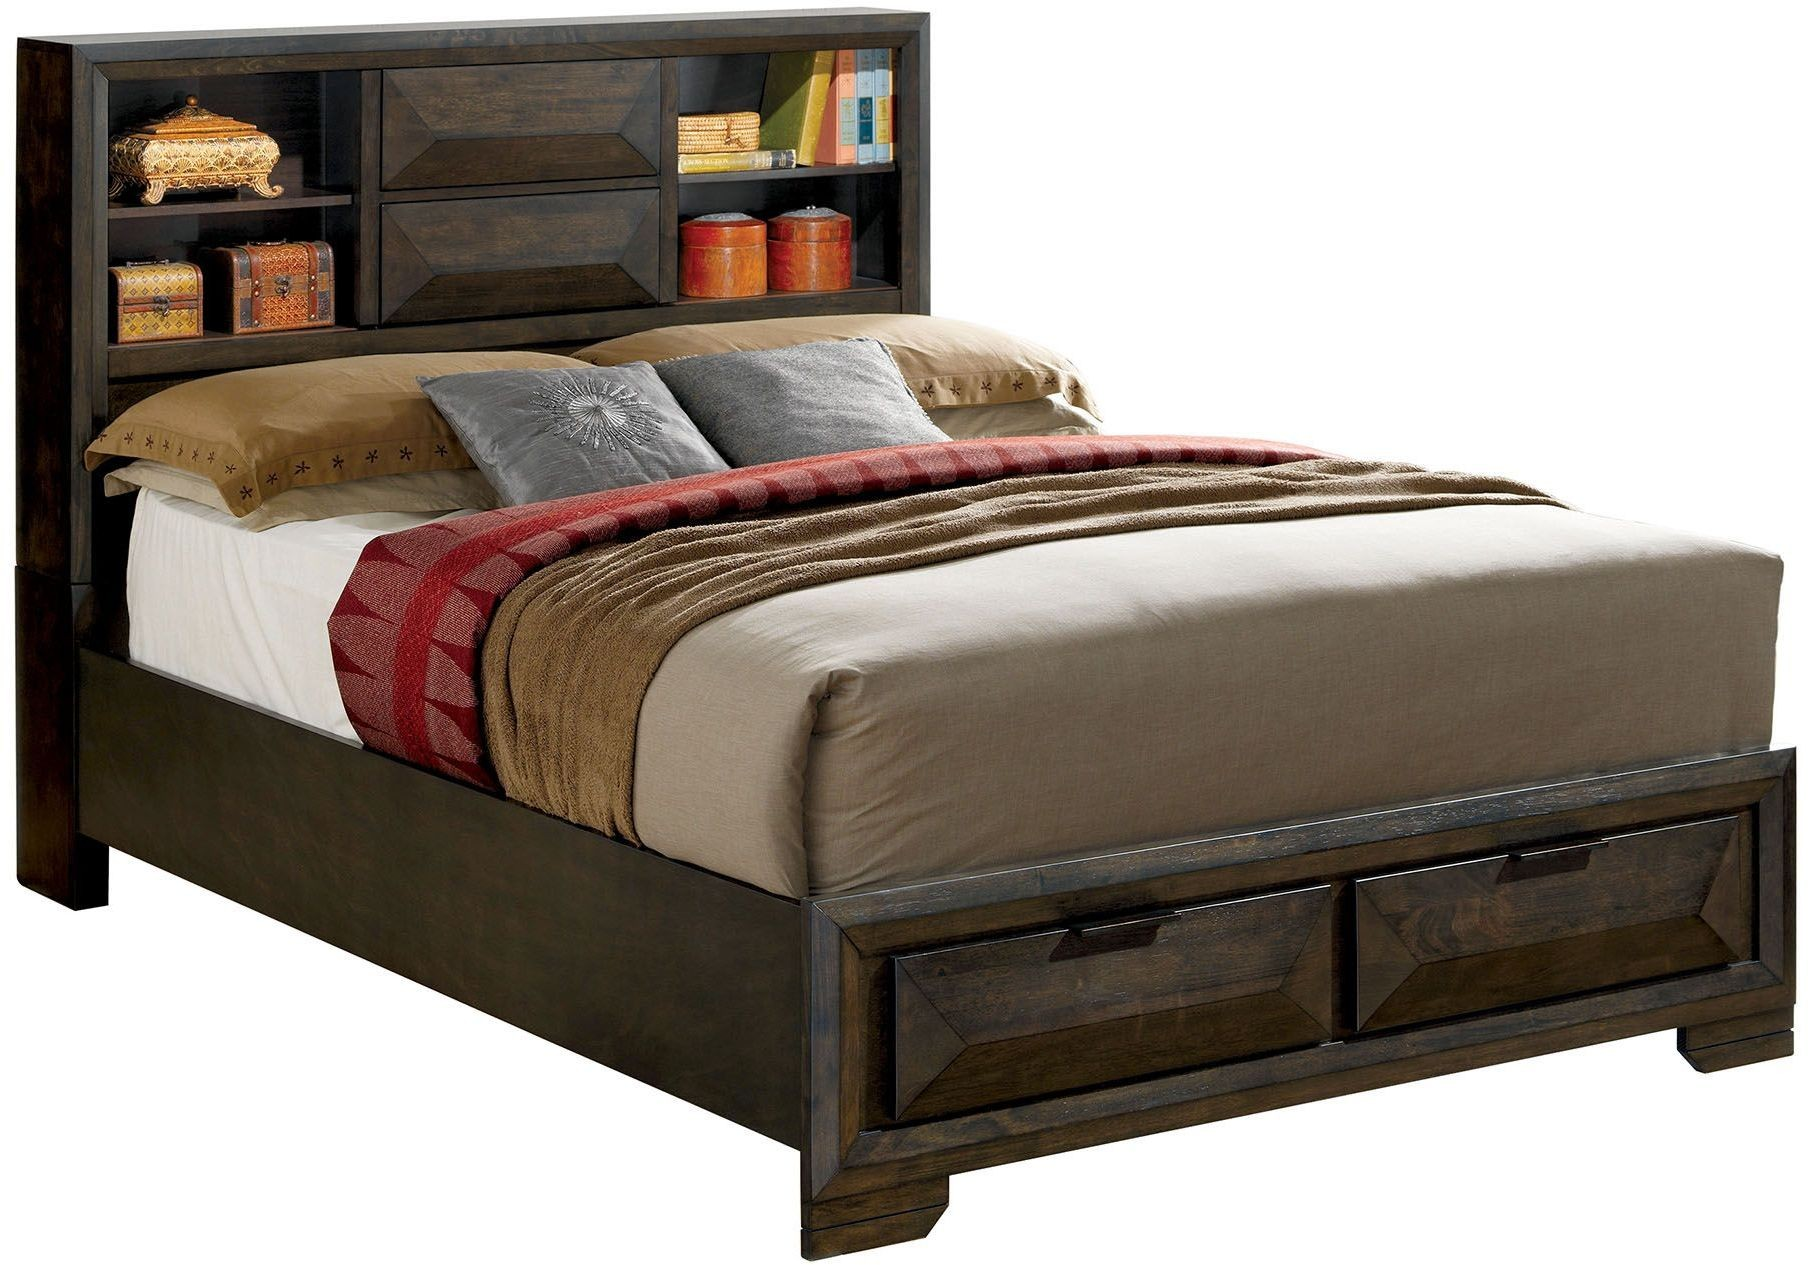 Nikomedes espresso cal king platform storage bed cm7557ck California king platform bed